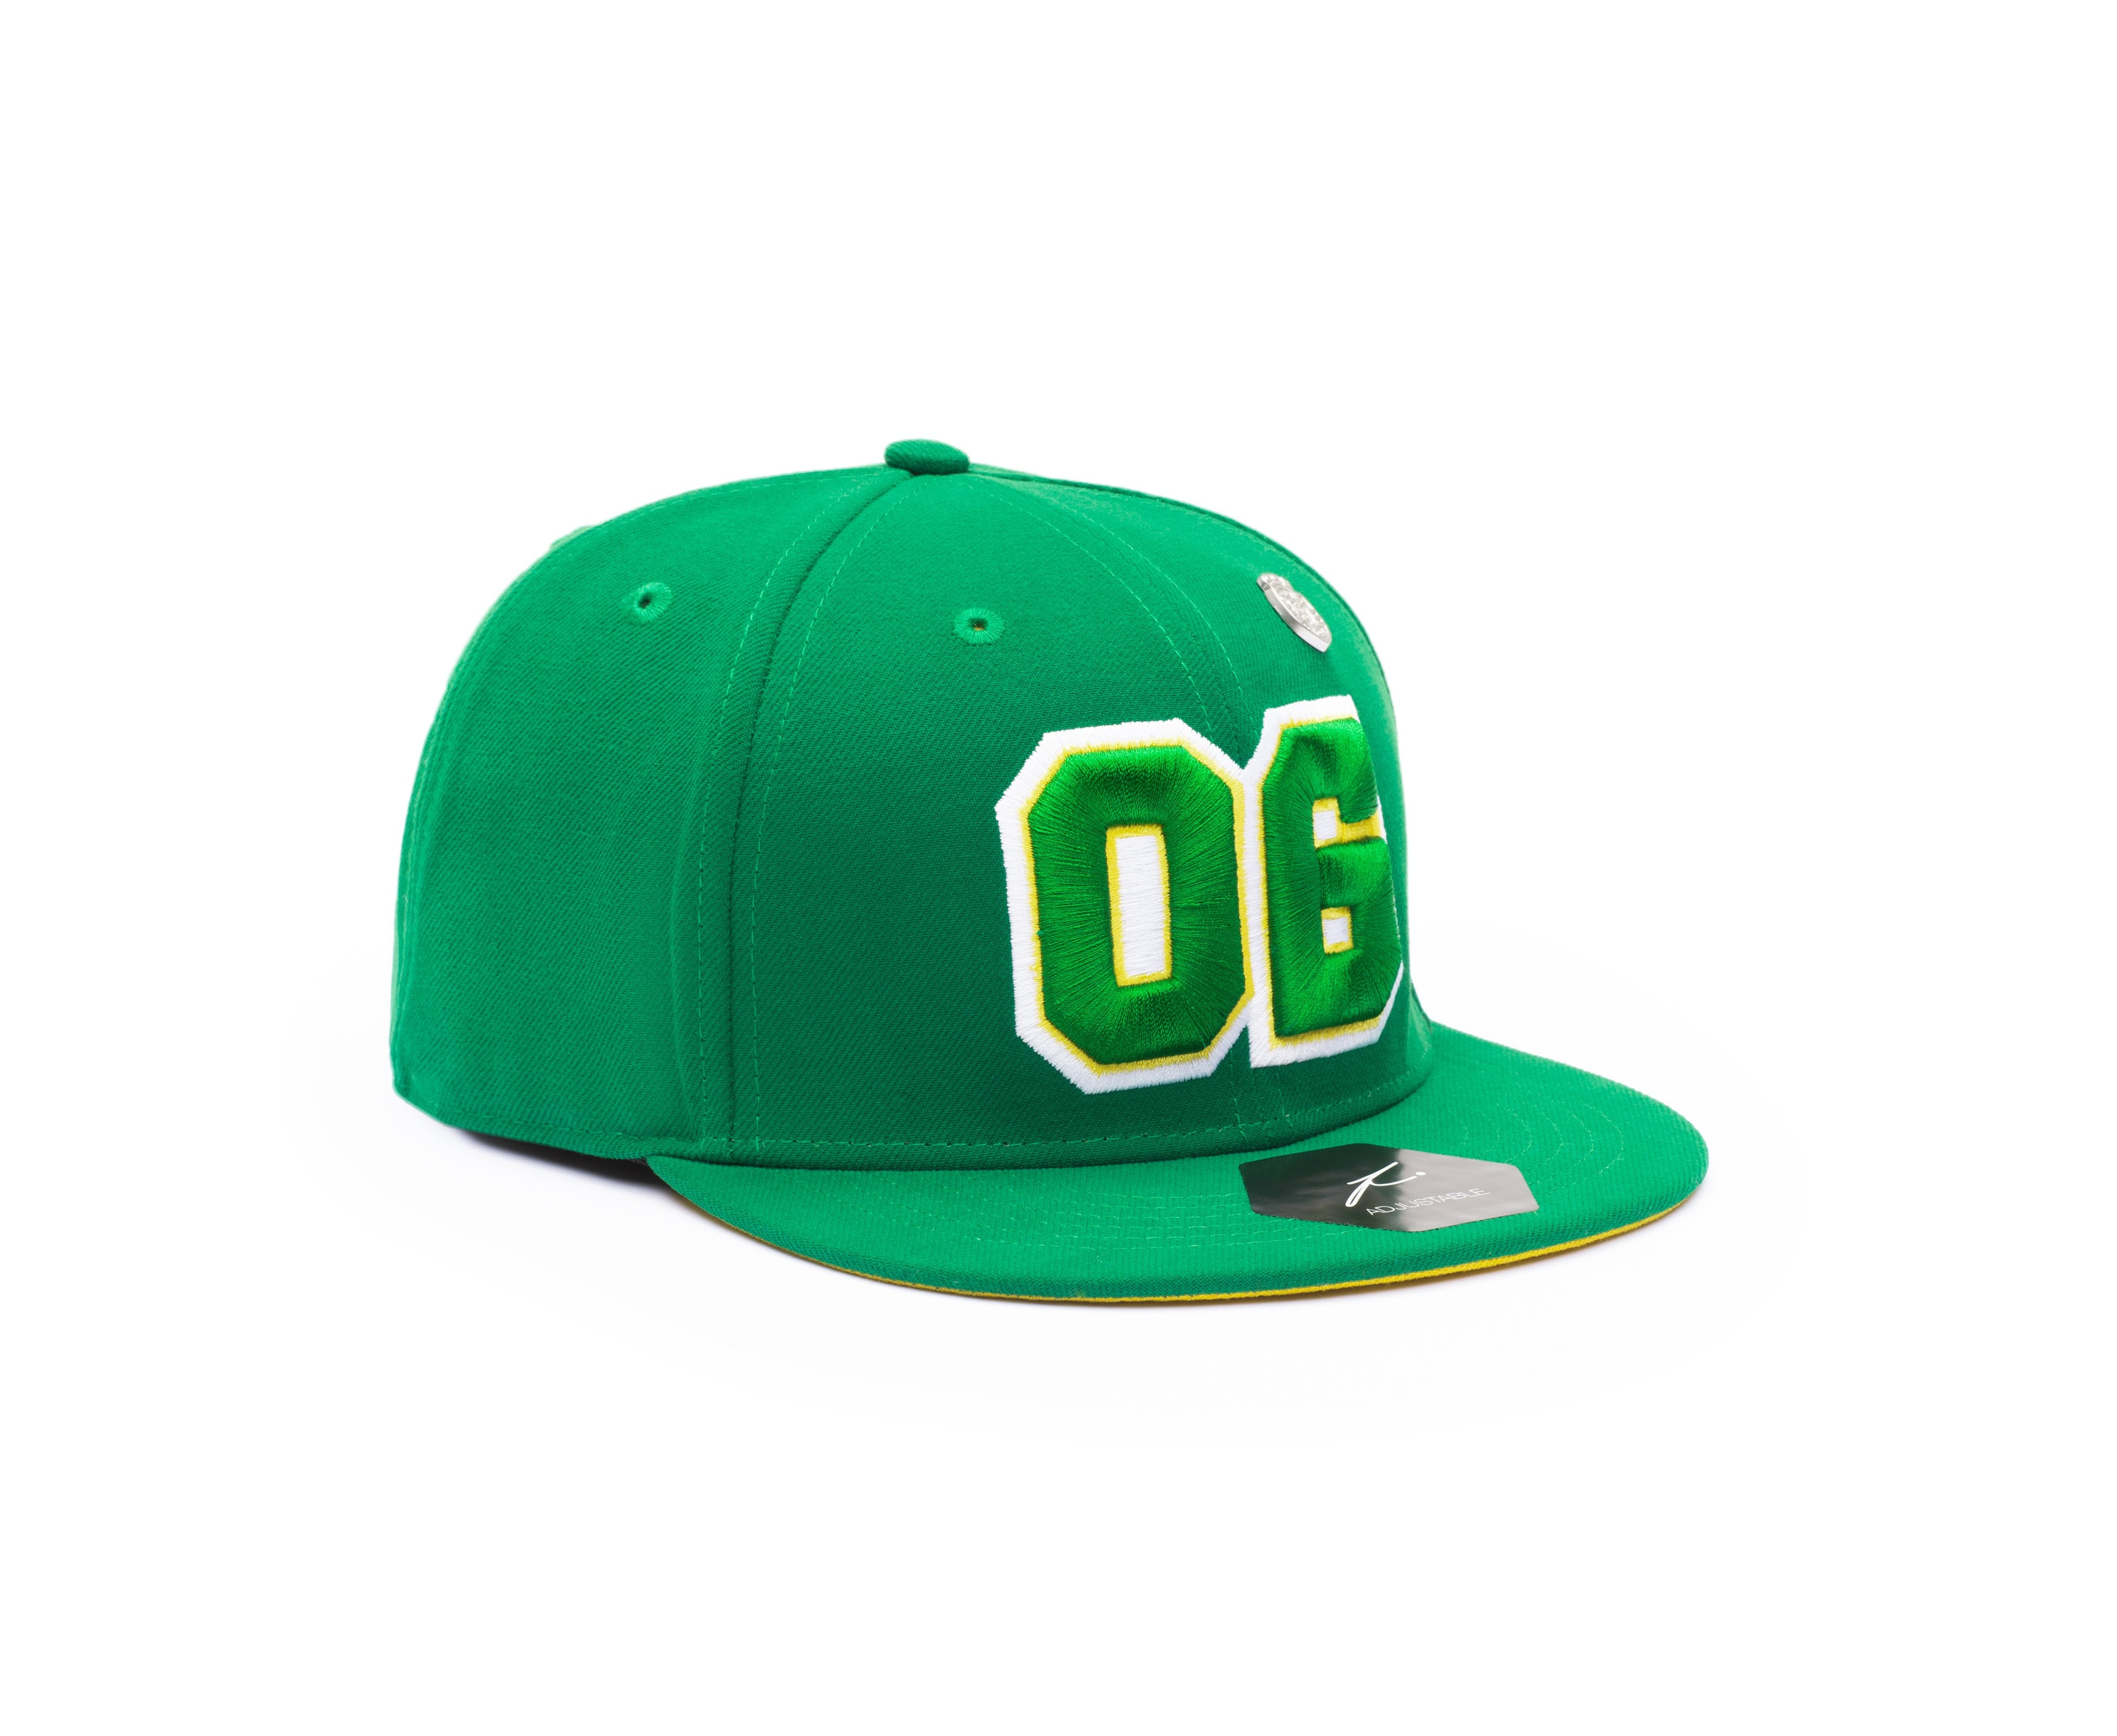 Sporting Clube de Portugal Hype Snapback